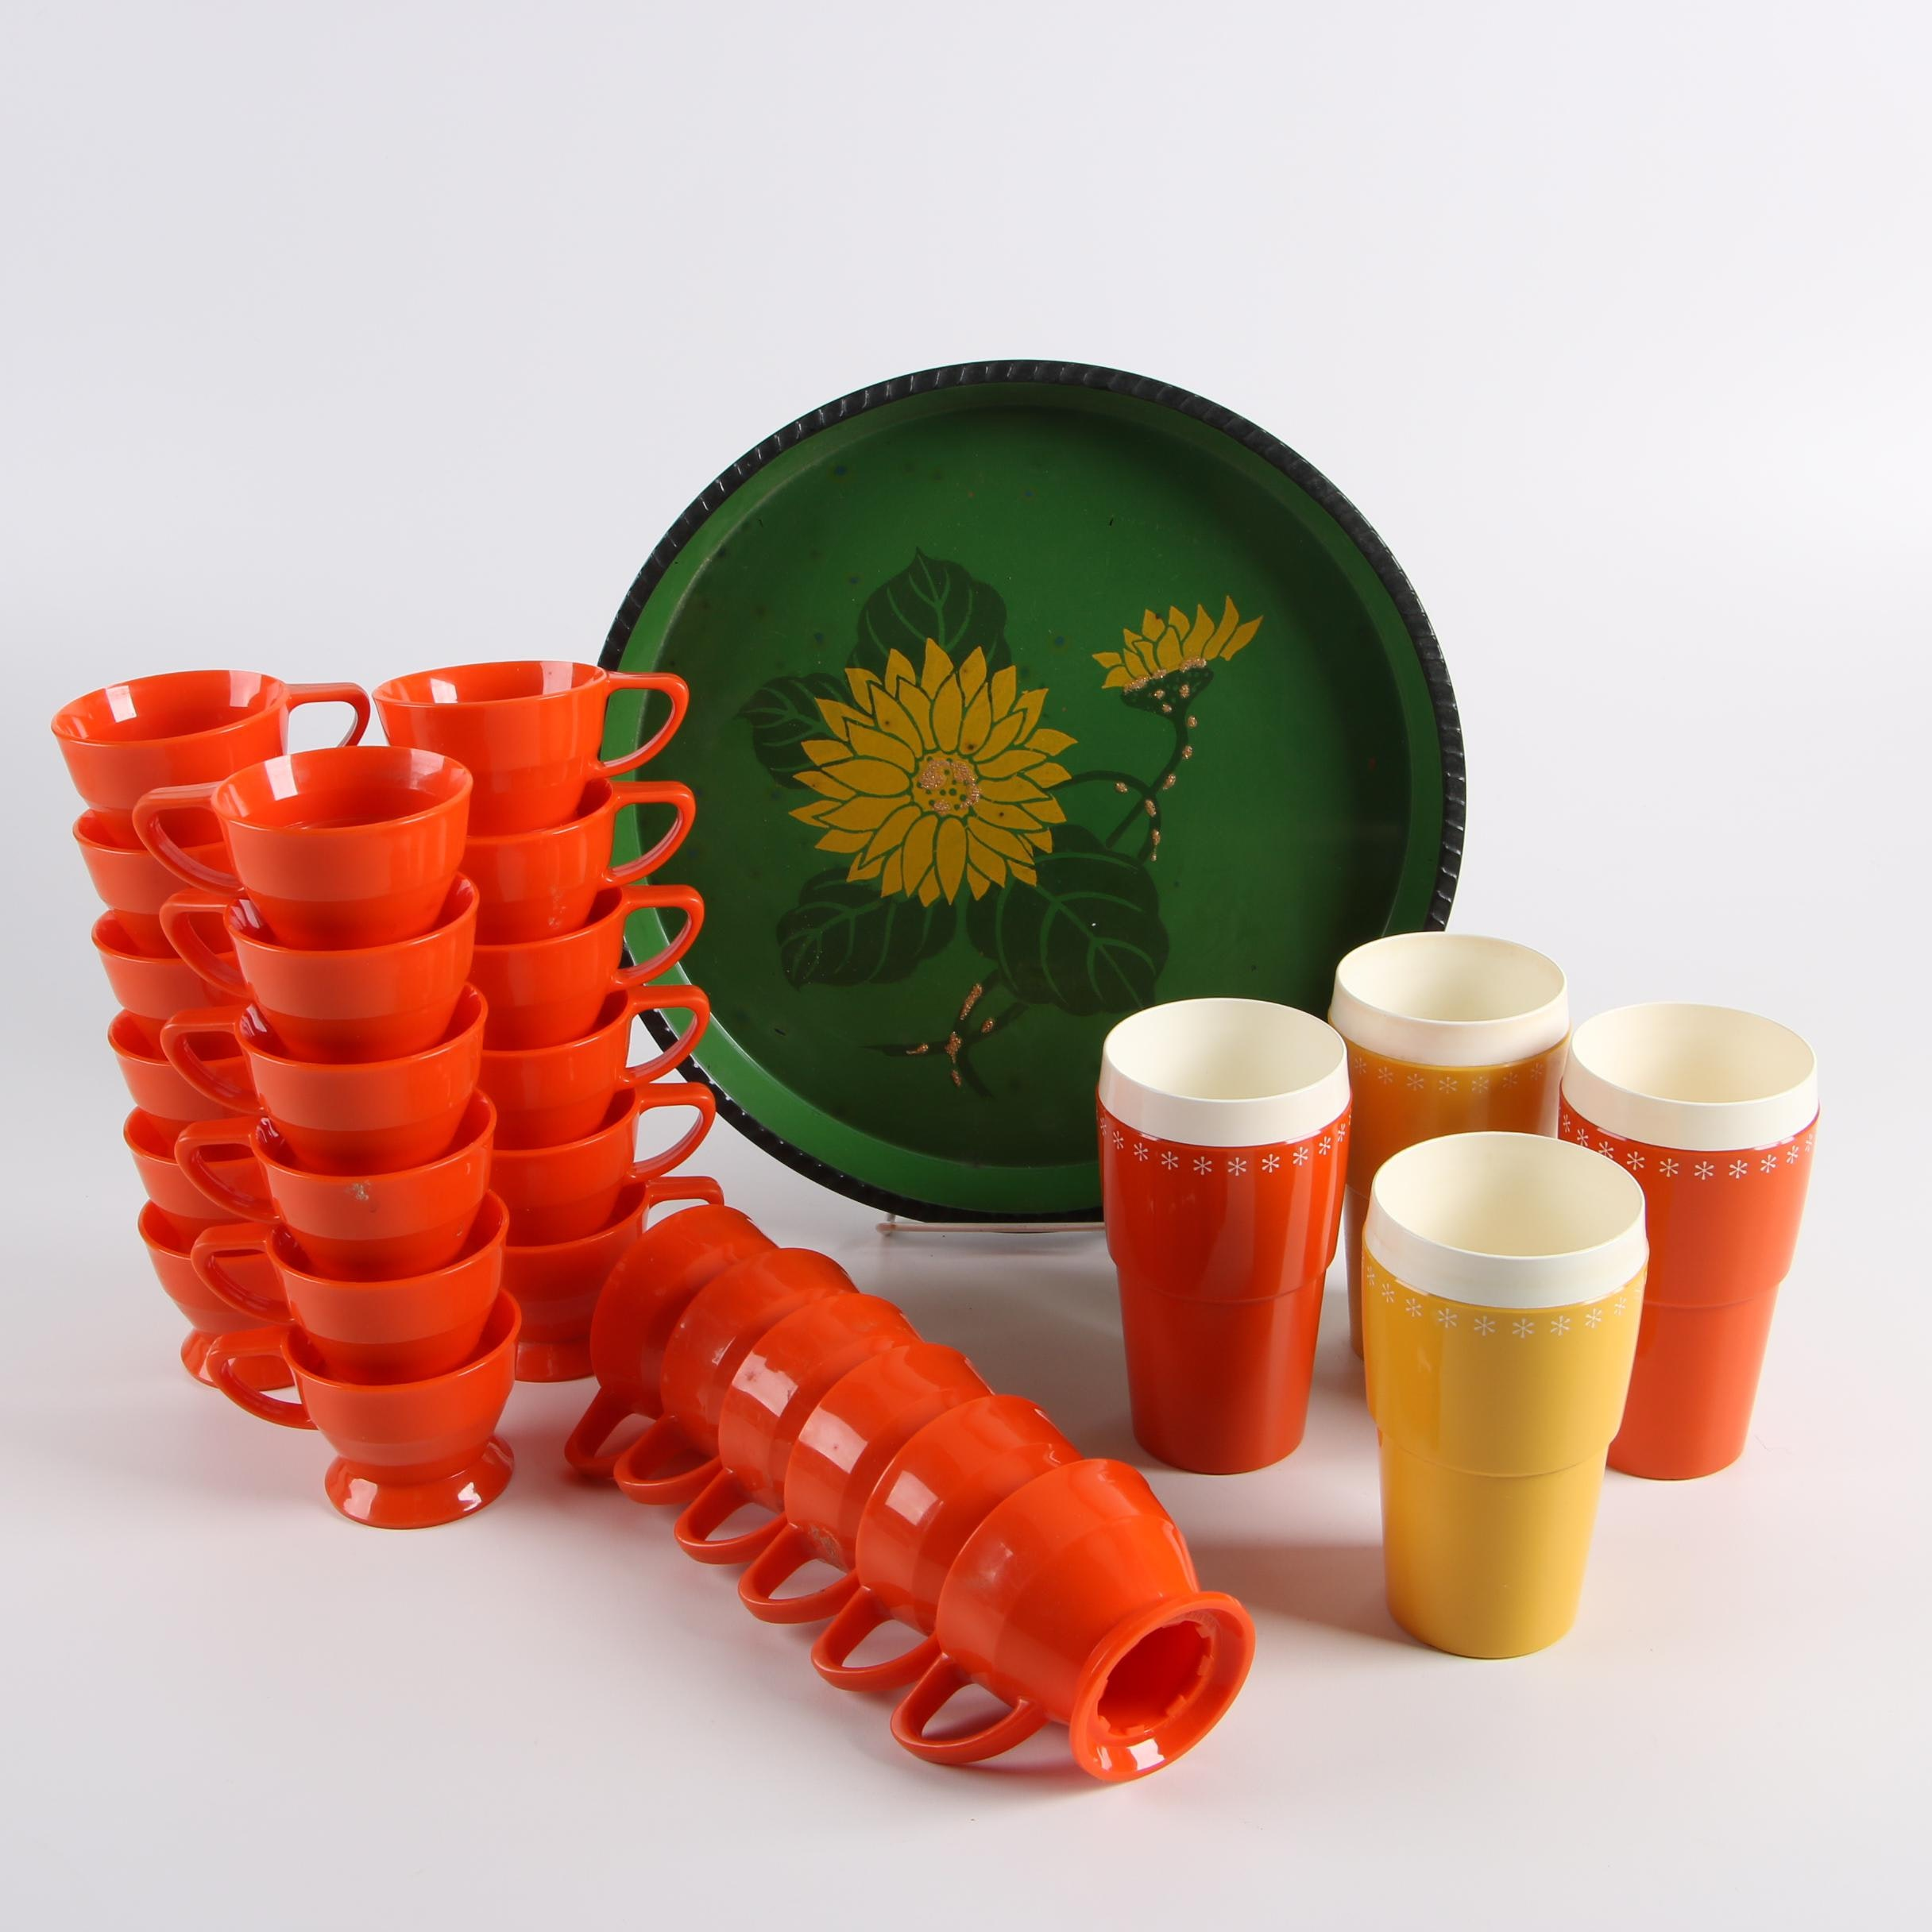 Vintage Solo Cup Co. Orange Plastic Cup Holders with Tray and Tumblers